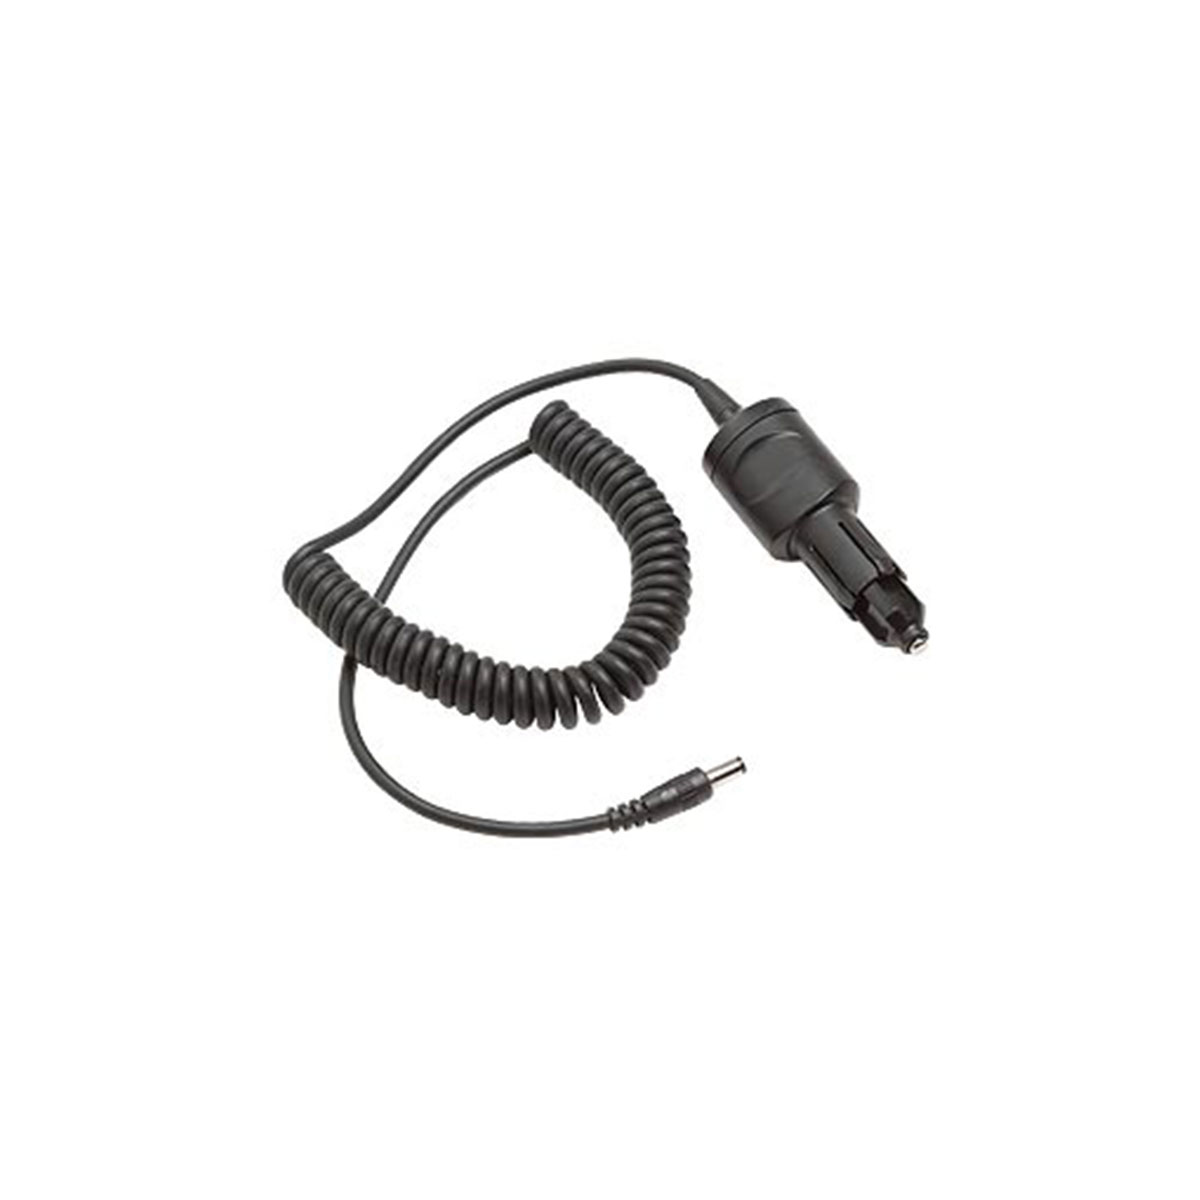 Thermal Imager Car Charger, TI-CAR-CHARGER, Fluke